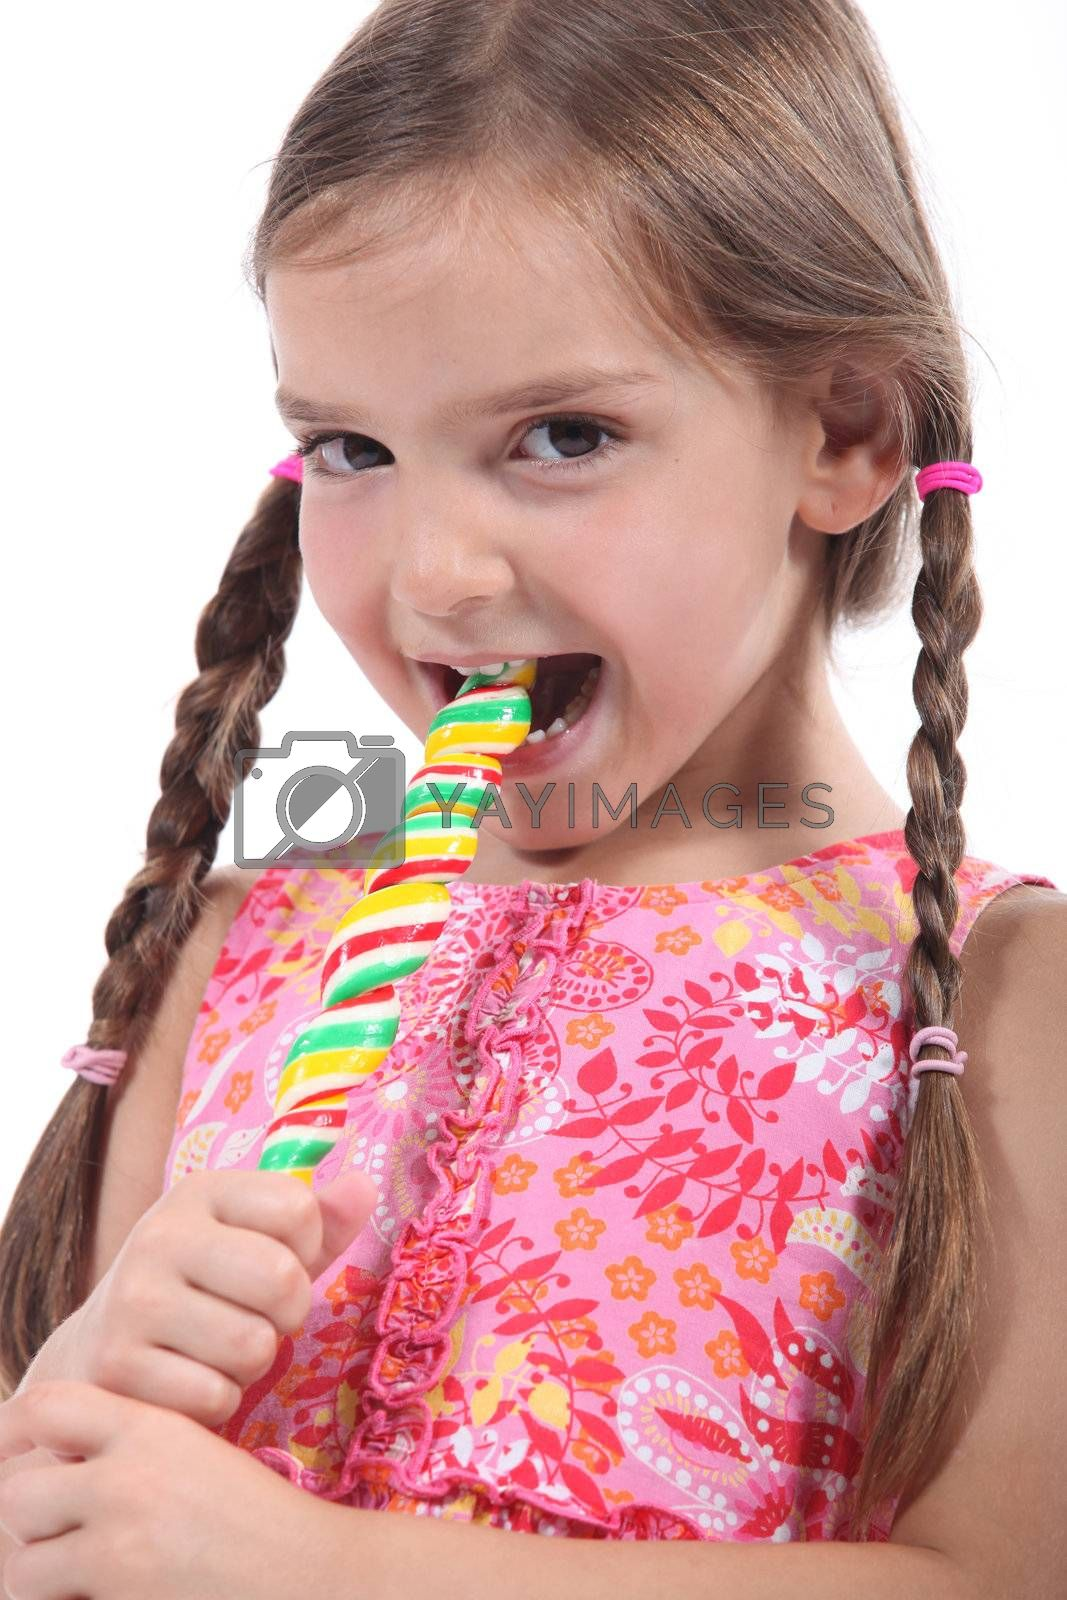 little girl with plaits sucking lollipop